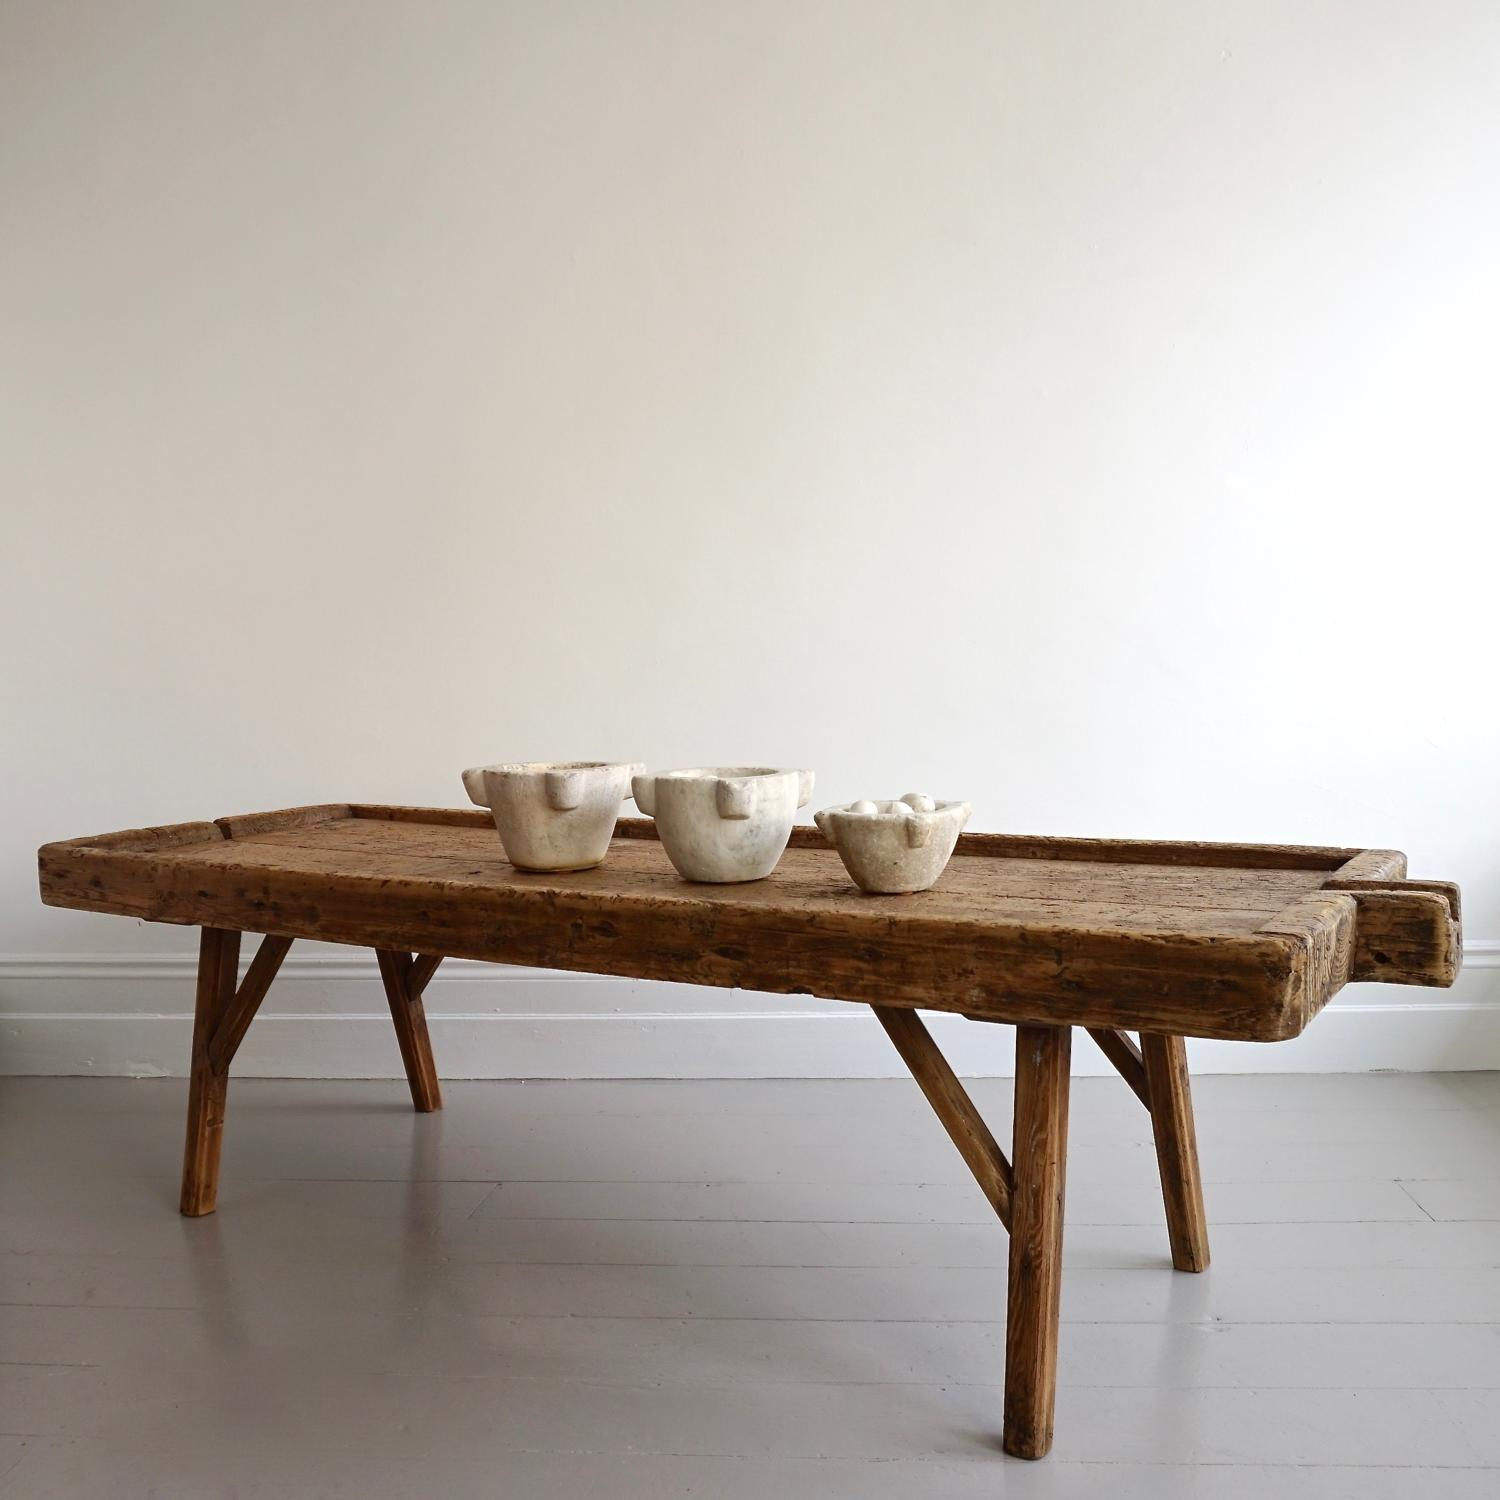 MONUMENTAL 18TH CENTURY ELM COFFEE TABLE